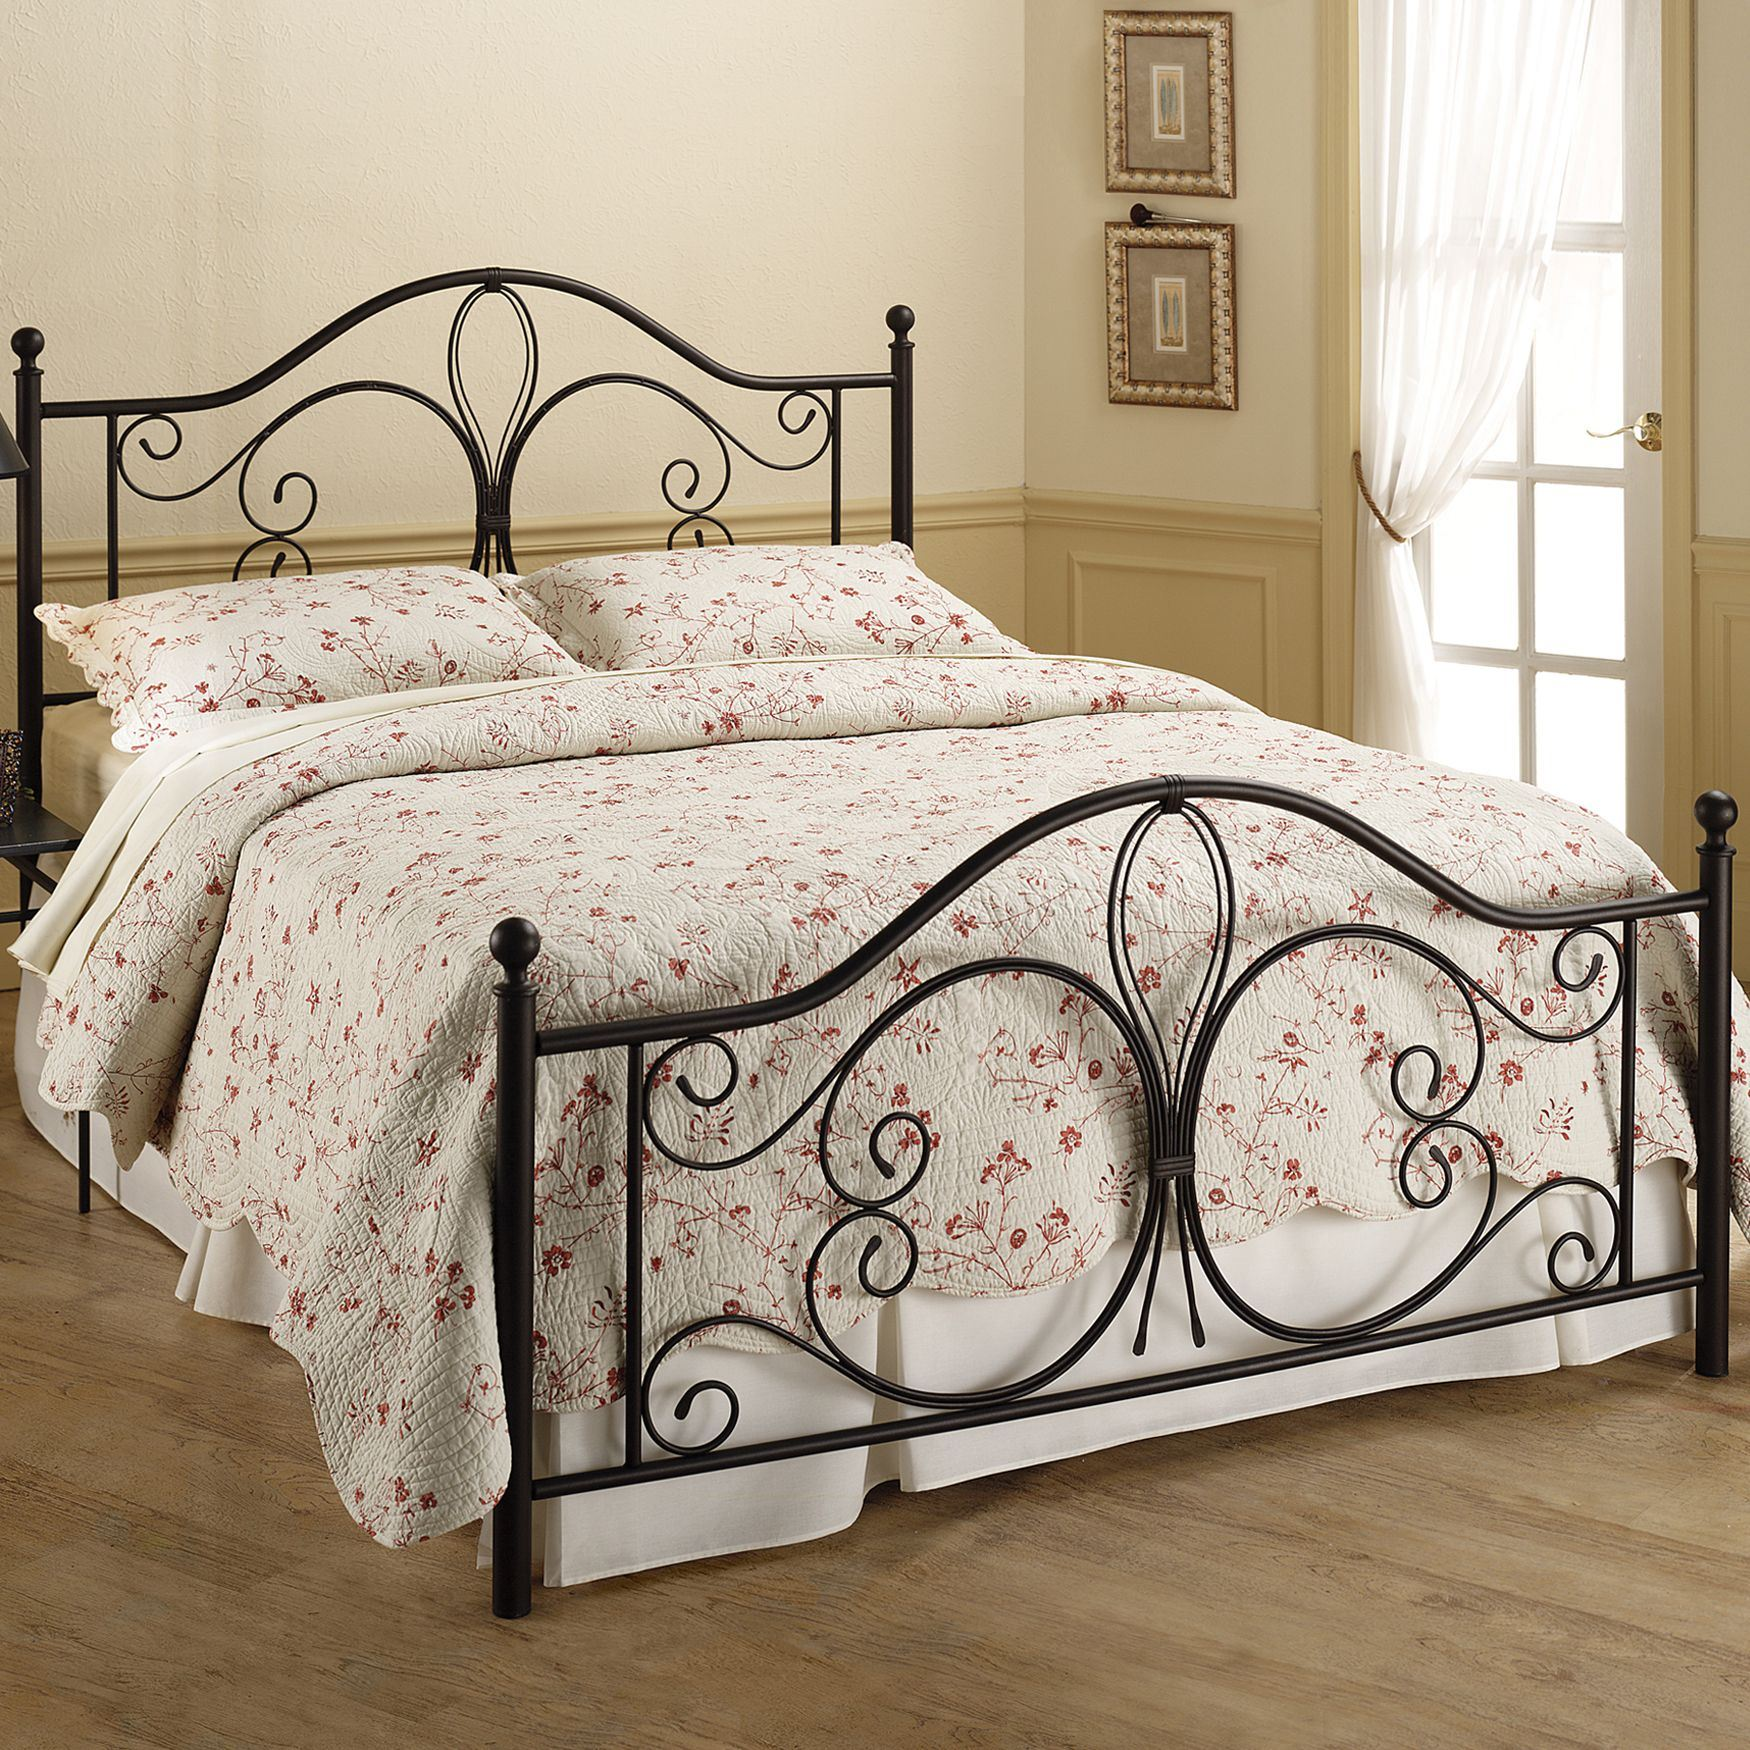 Full Bed Set with Bed Frame, 76'Lx55½'Wx49½'H,